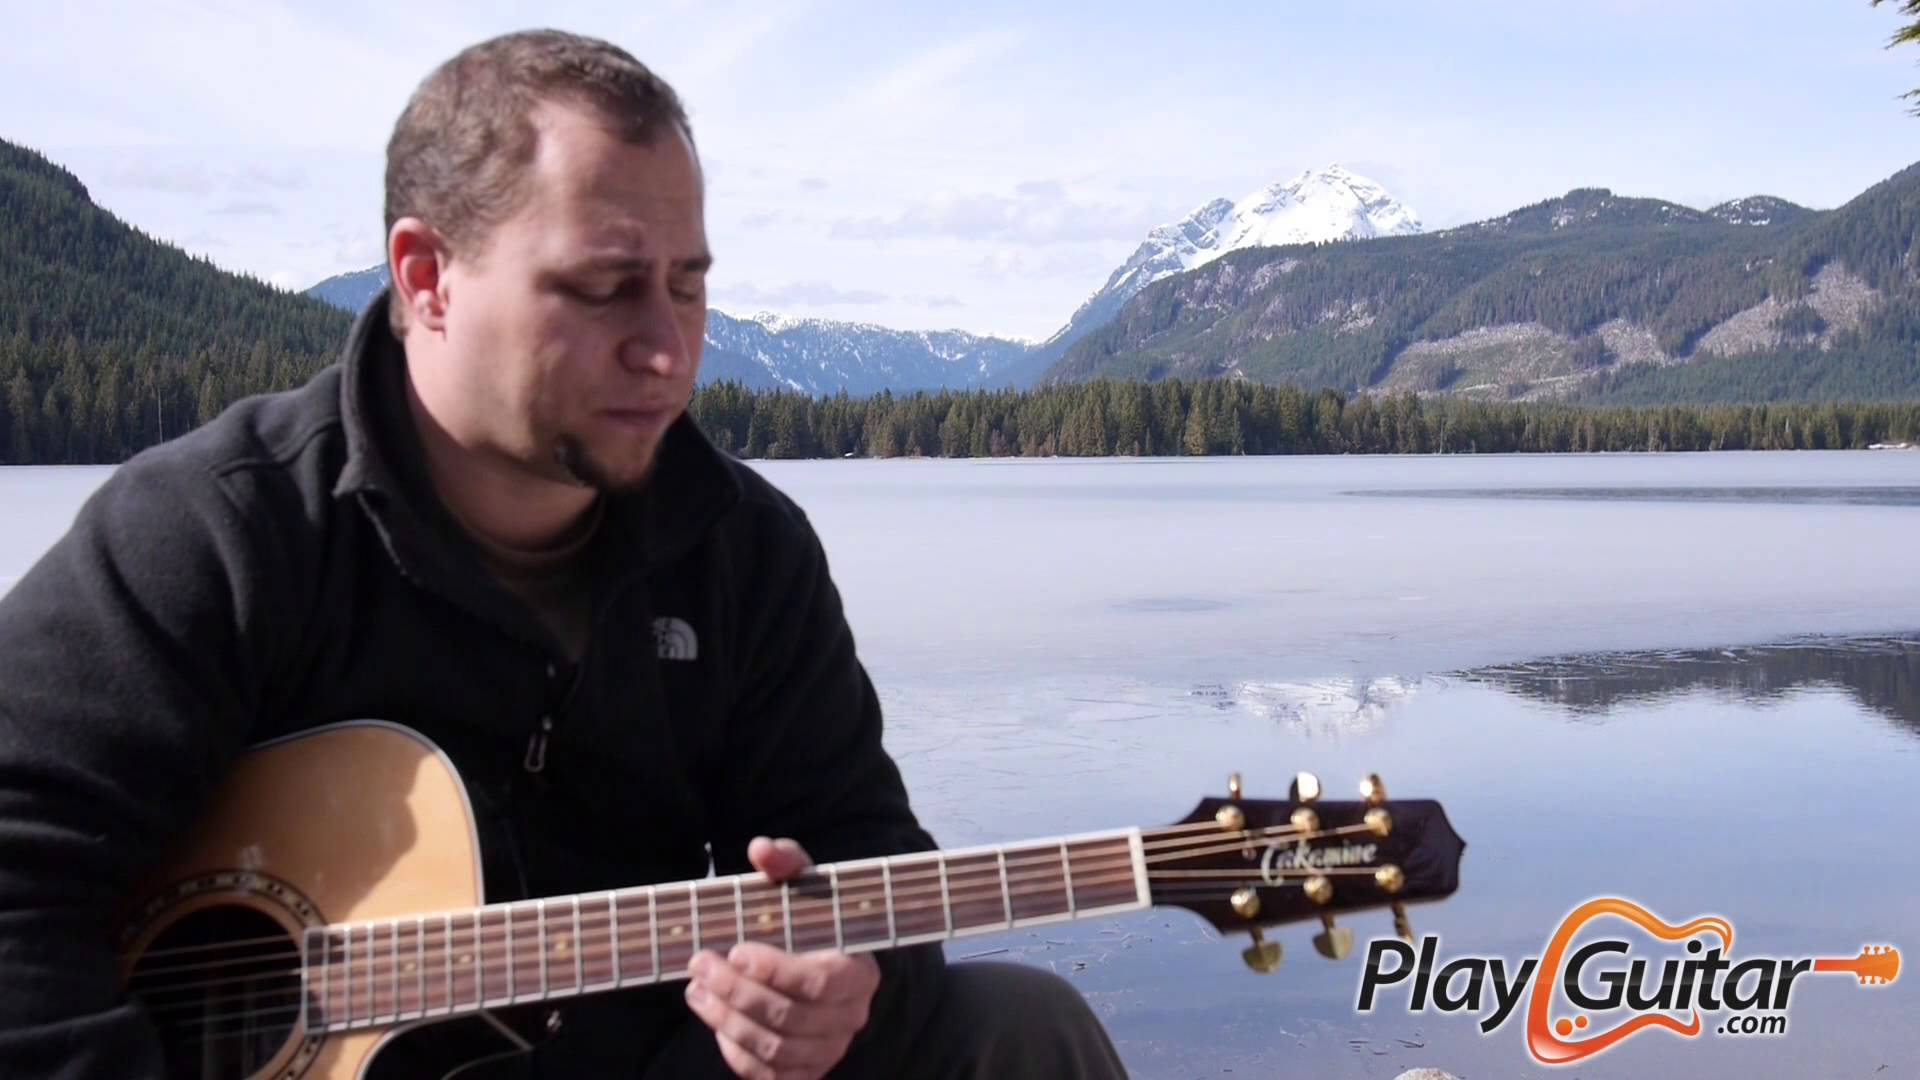 Cool Chord Progression With Drone Notes Play Guitar